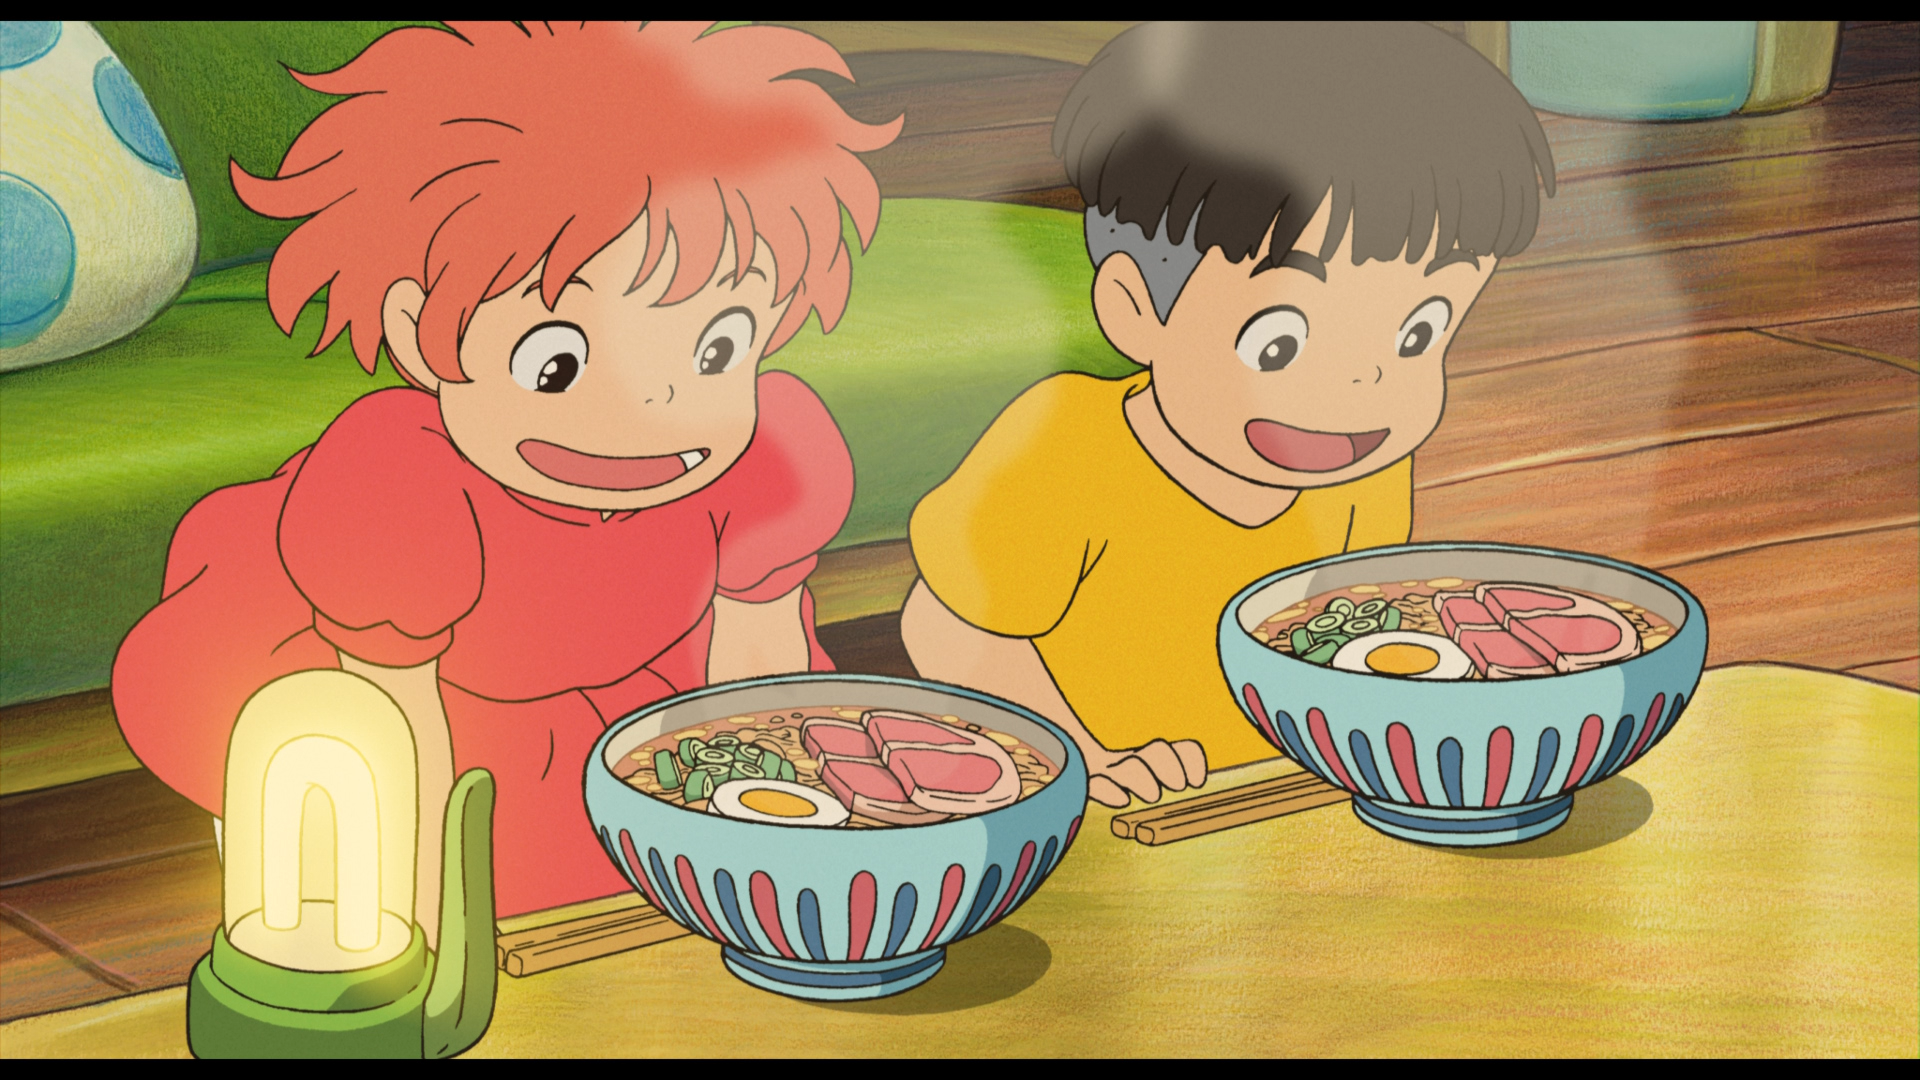 Ponyo Wallpapers Movie Hq Ponyo Pictures 4k Wallpapers 2019